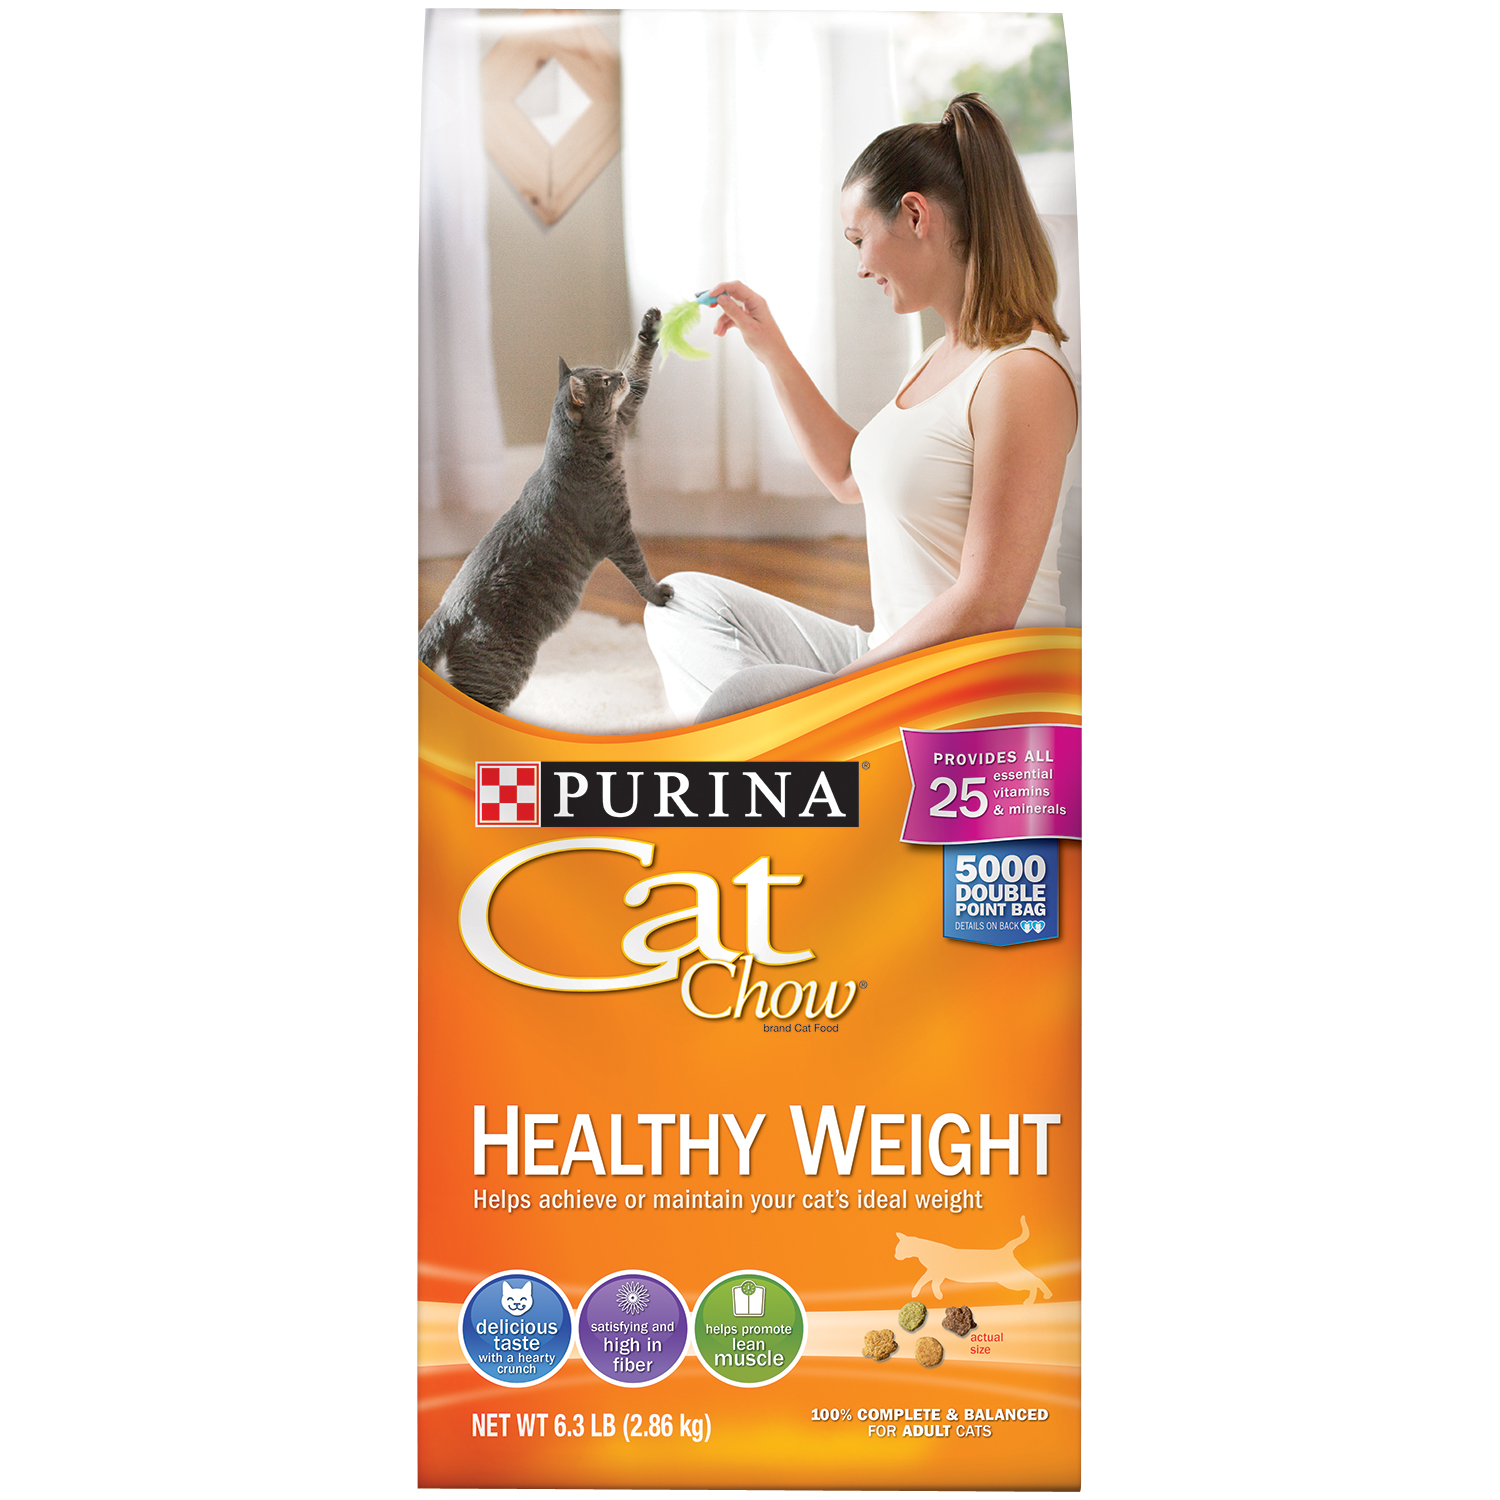 Purina Cat Chow Healthy Weight Cat Food 6.3 lb. Bag